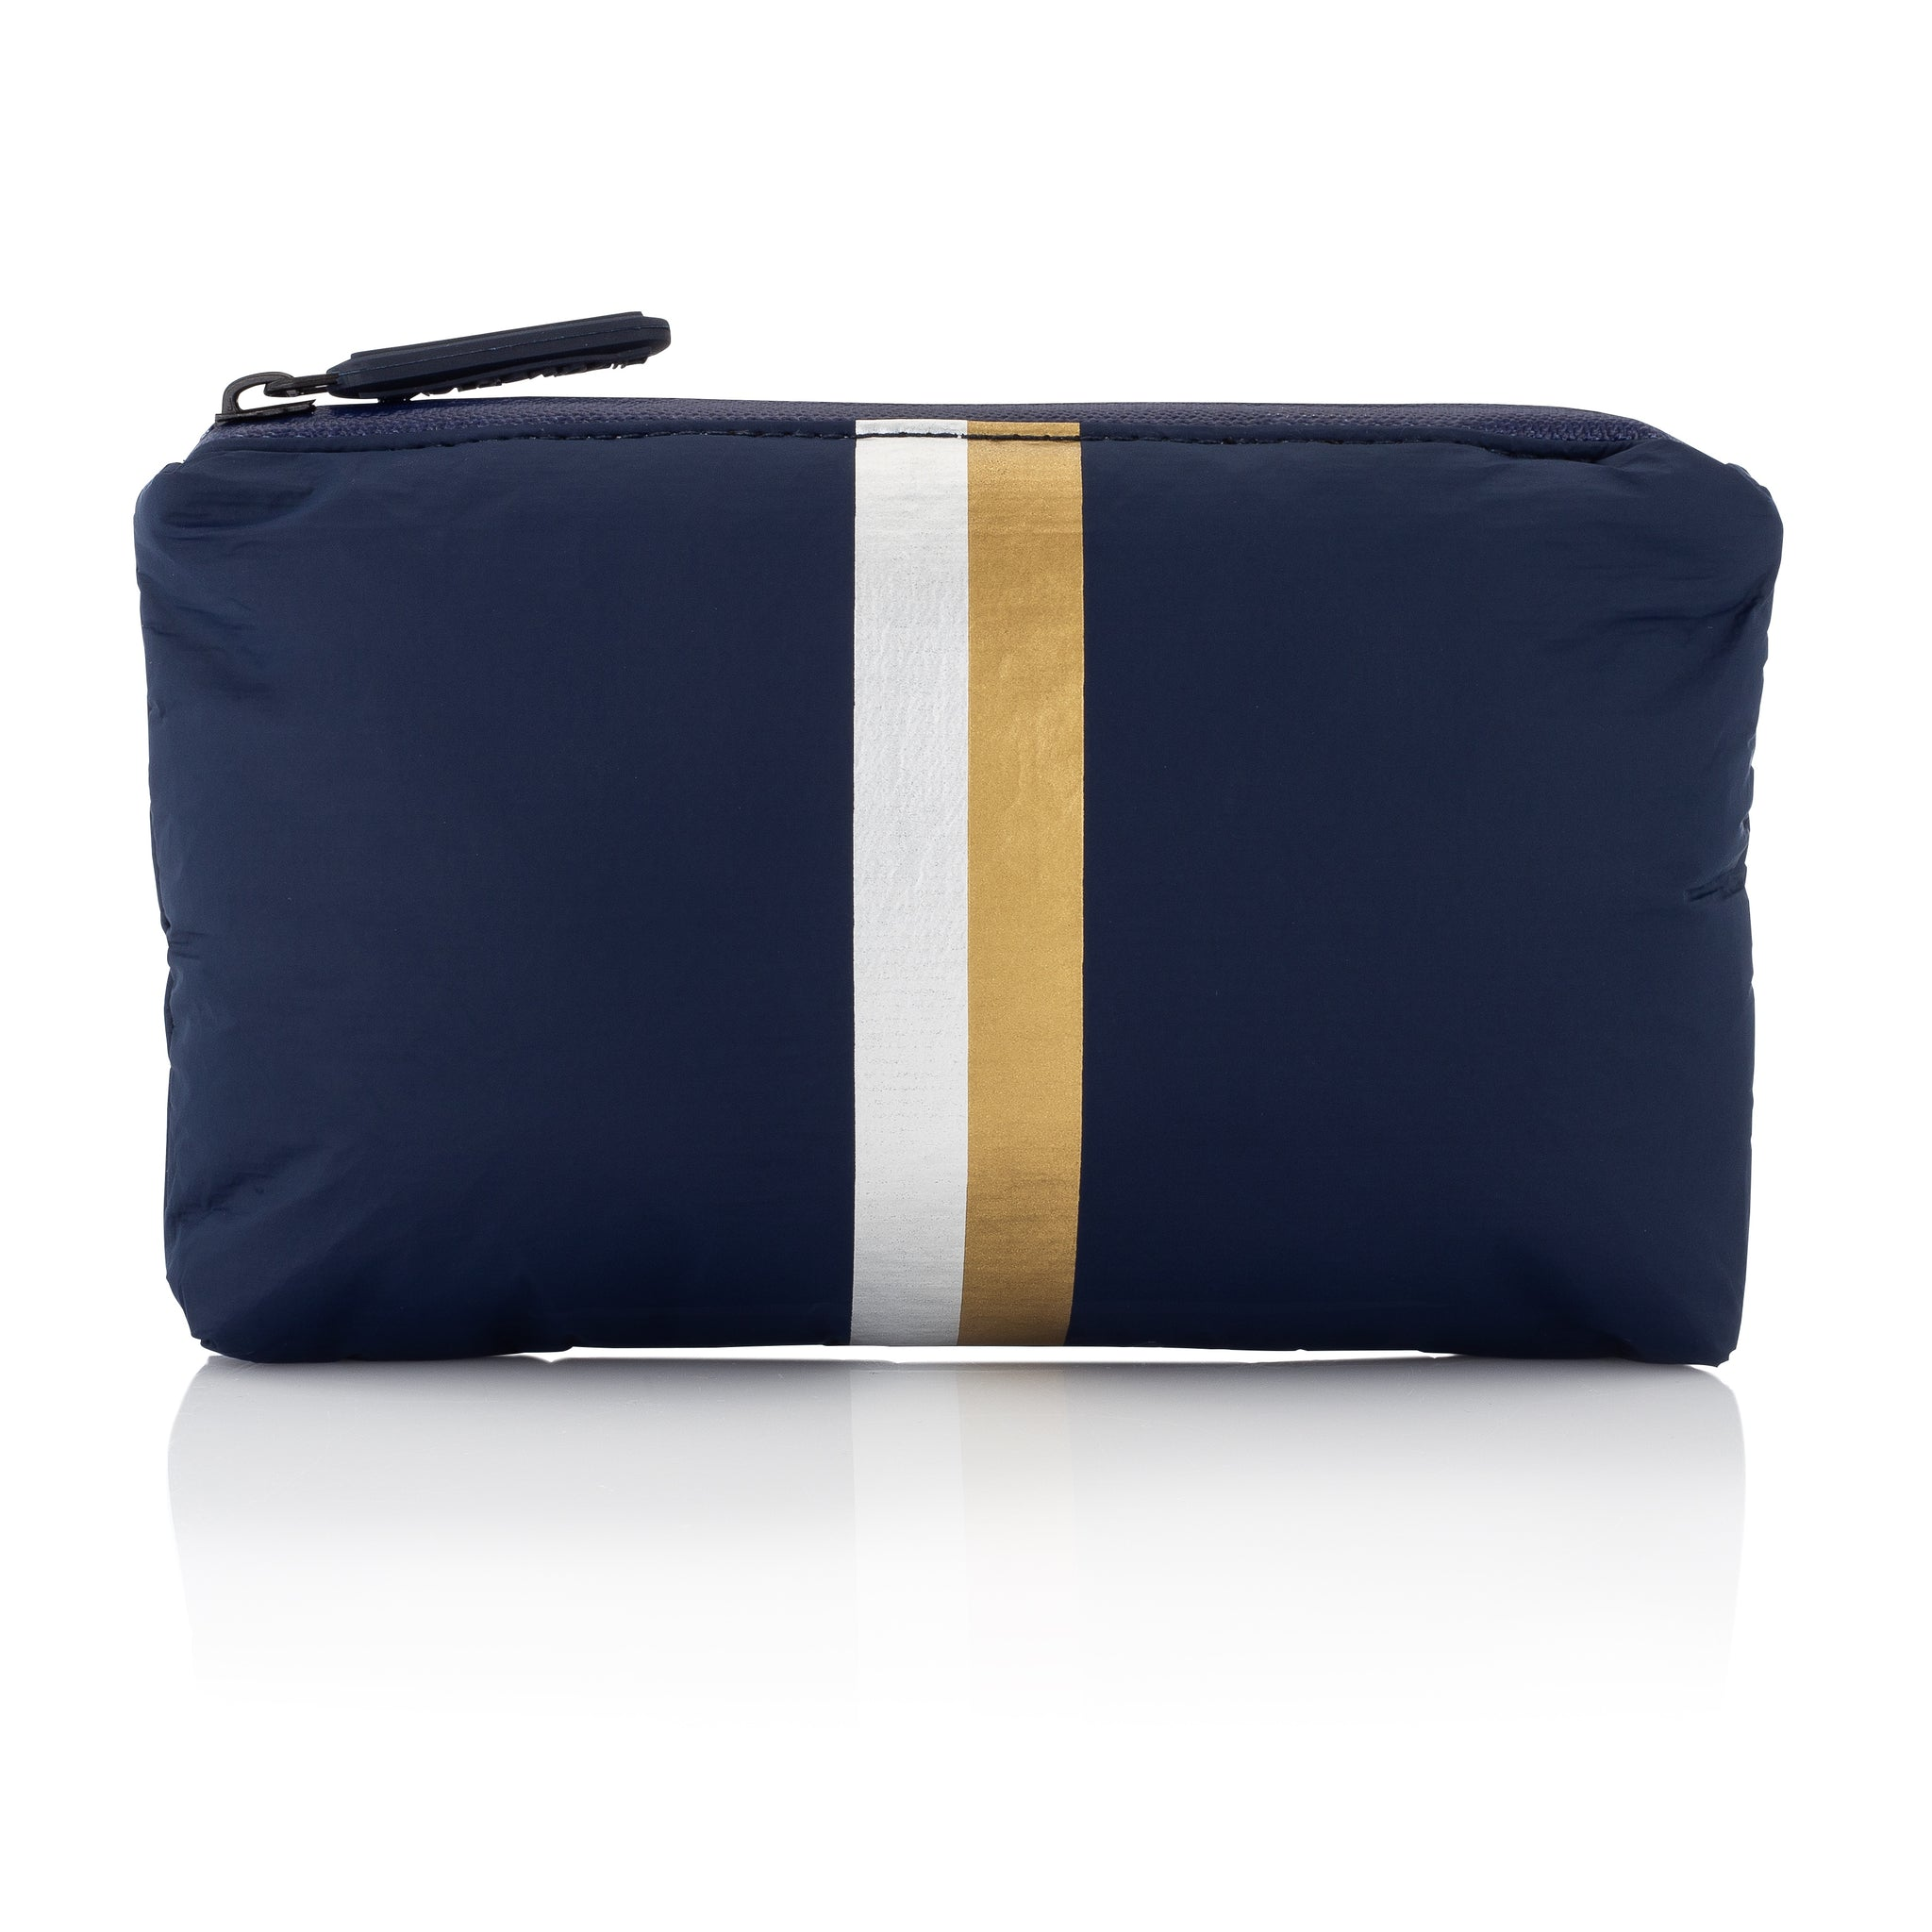 Cute Travel Pack - Mini Pack - Navy HLT Collection with Metallic Silver and Gold Stripes